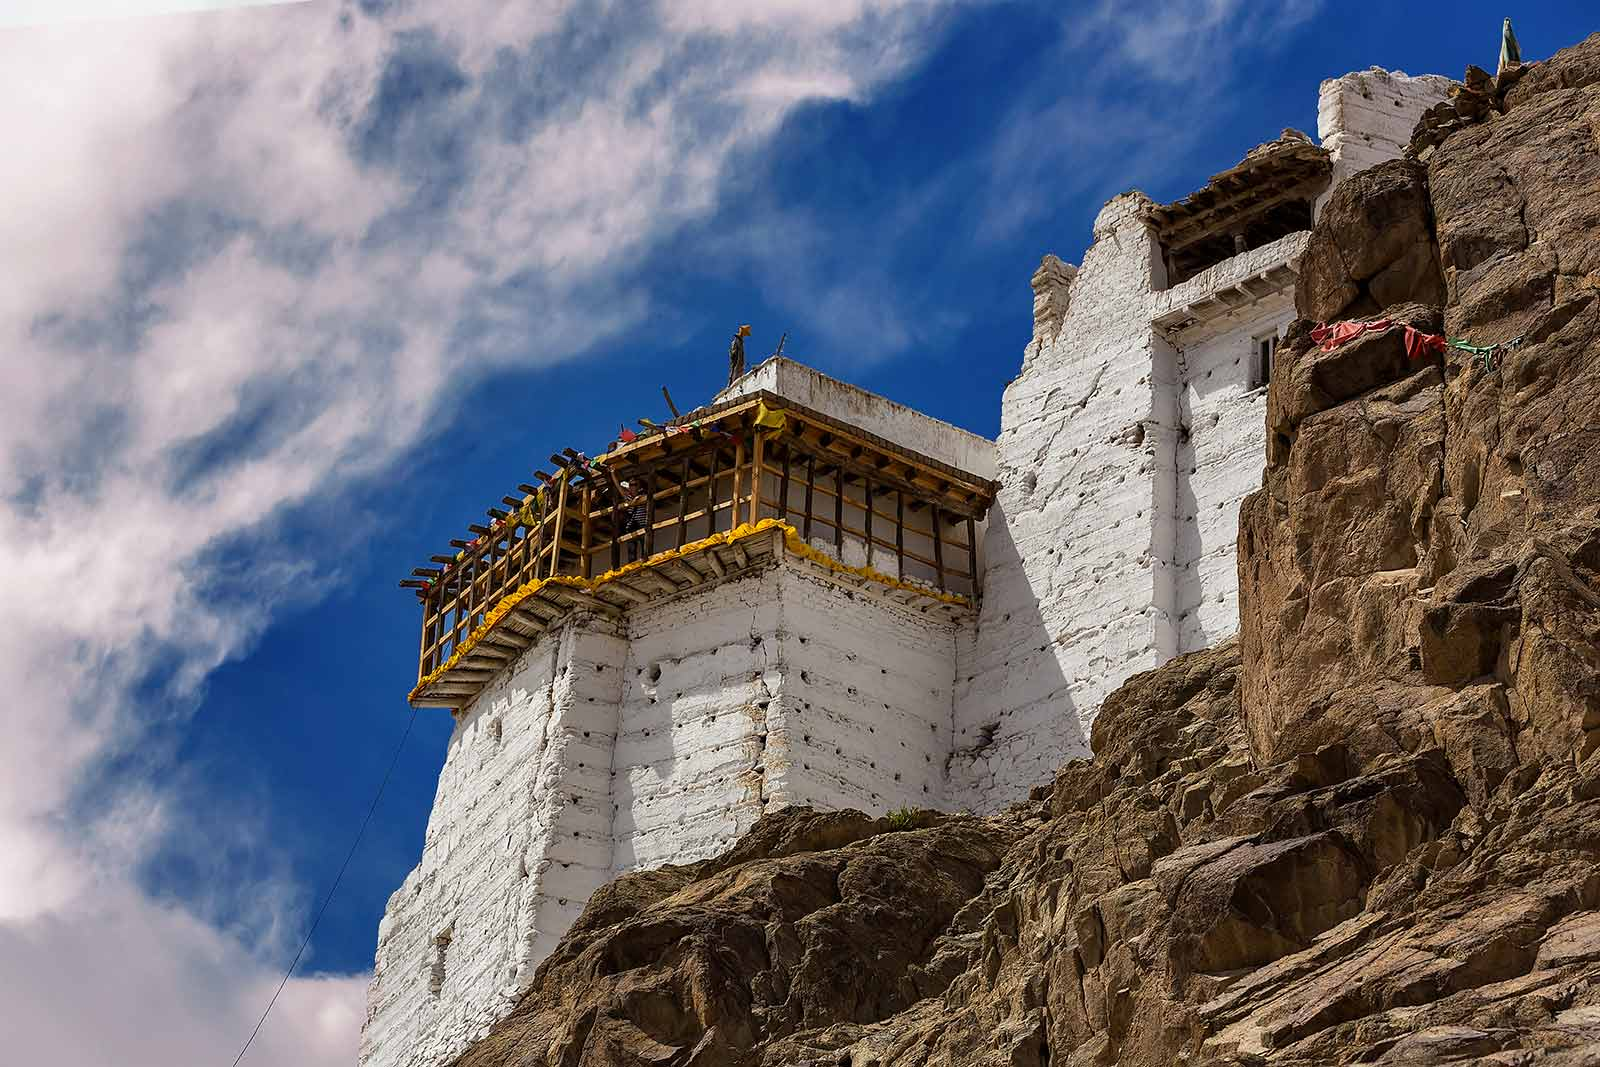 Namgyal Tsemo Gompa was founded in the early 15th century by King Tashi Namgyal.